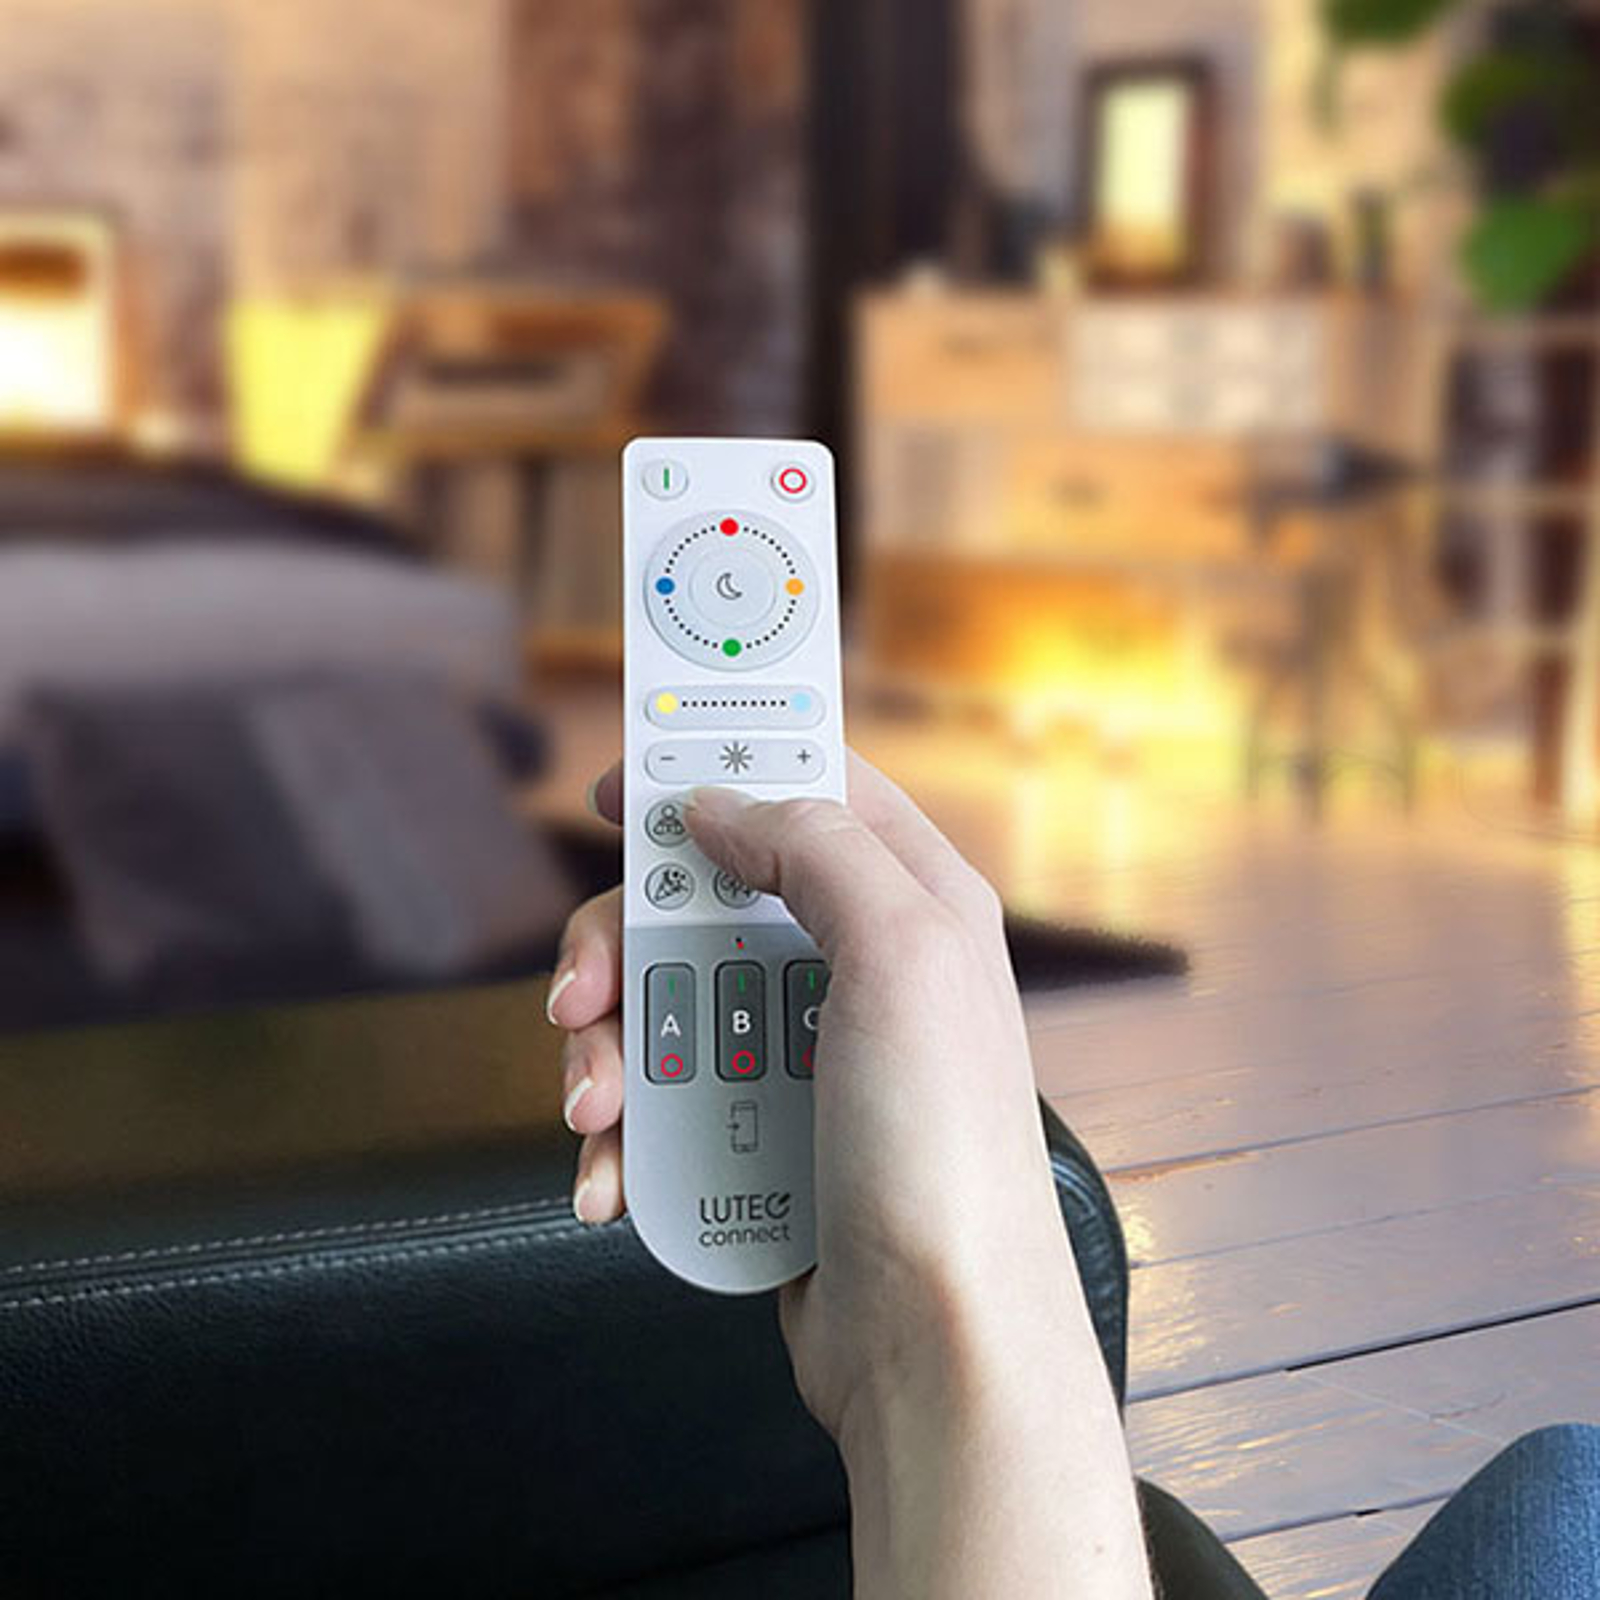 Remote fjernkontroll for Smart Home LUTEC connect